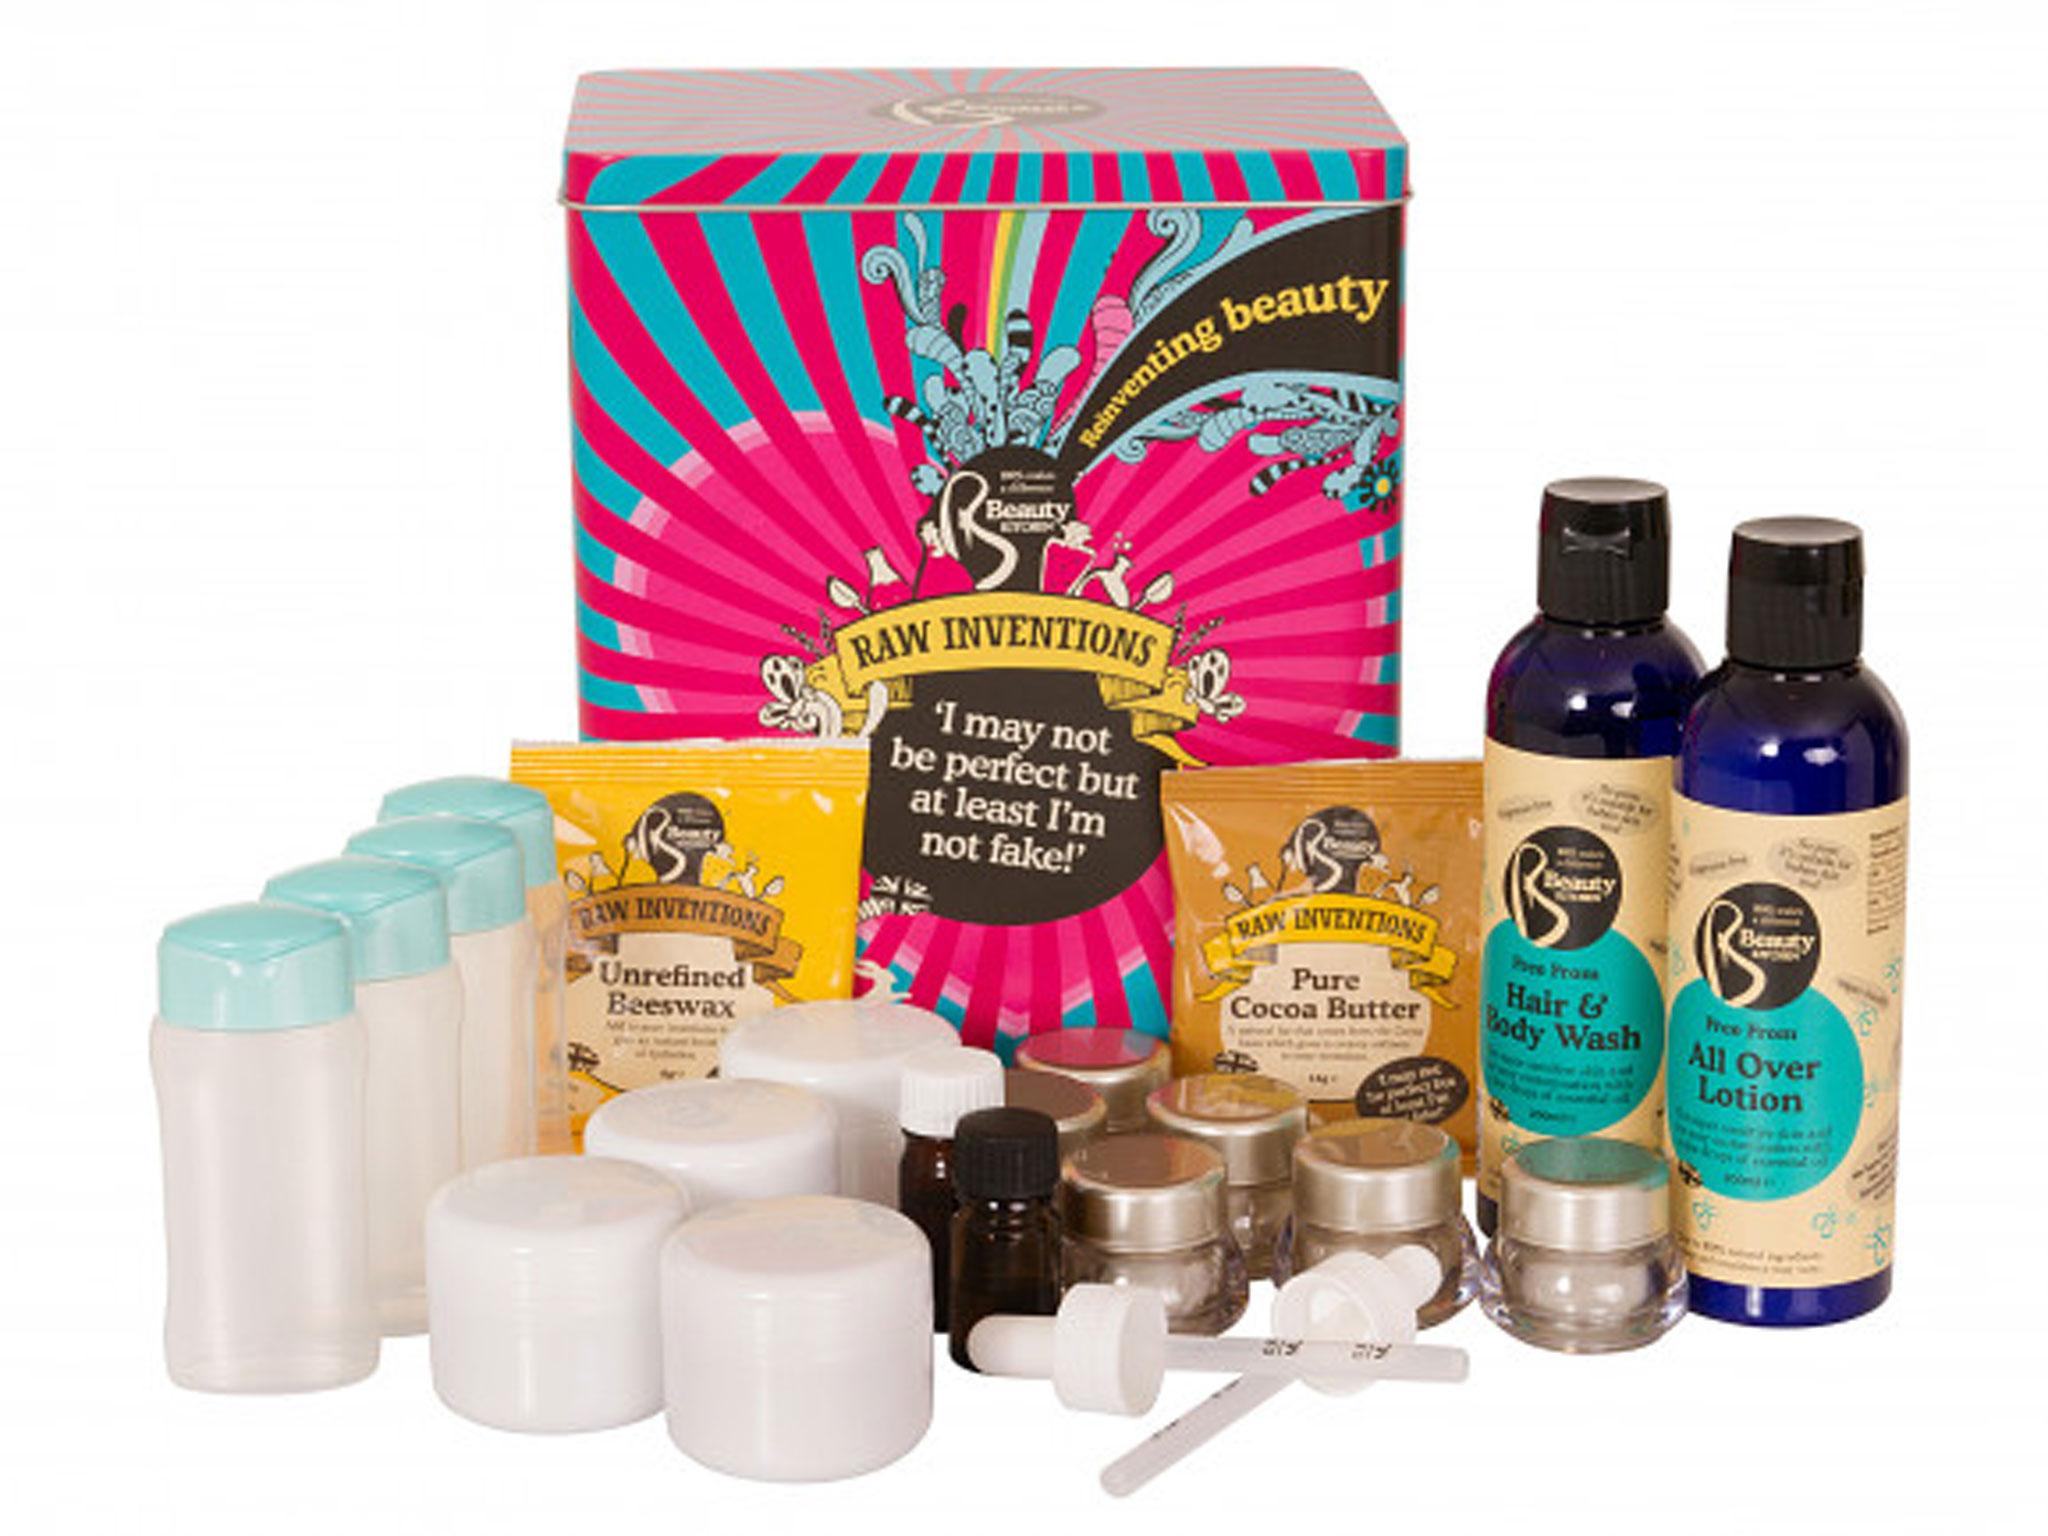 e14eb6e2f4e2 9 best DIY beauty products | The Independent